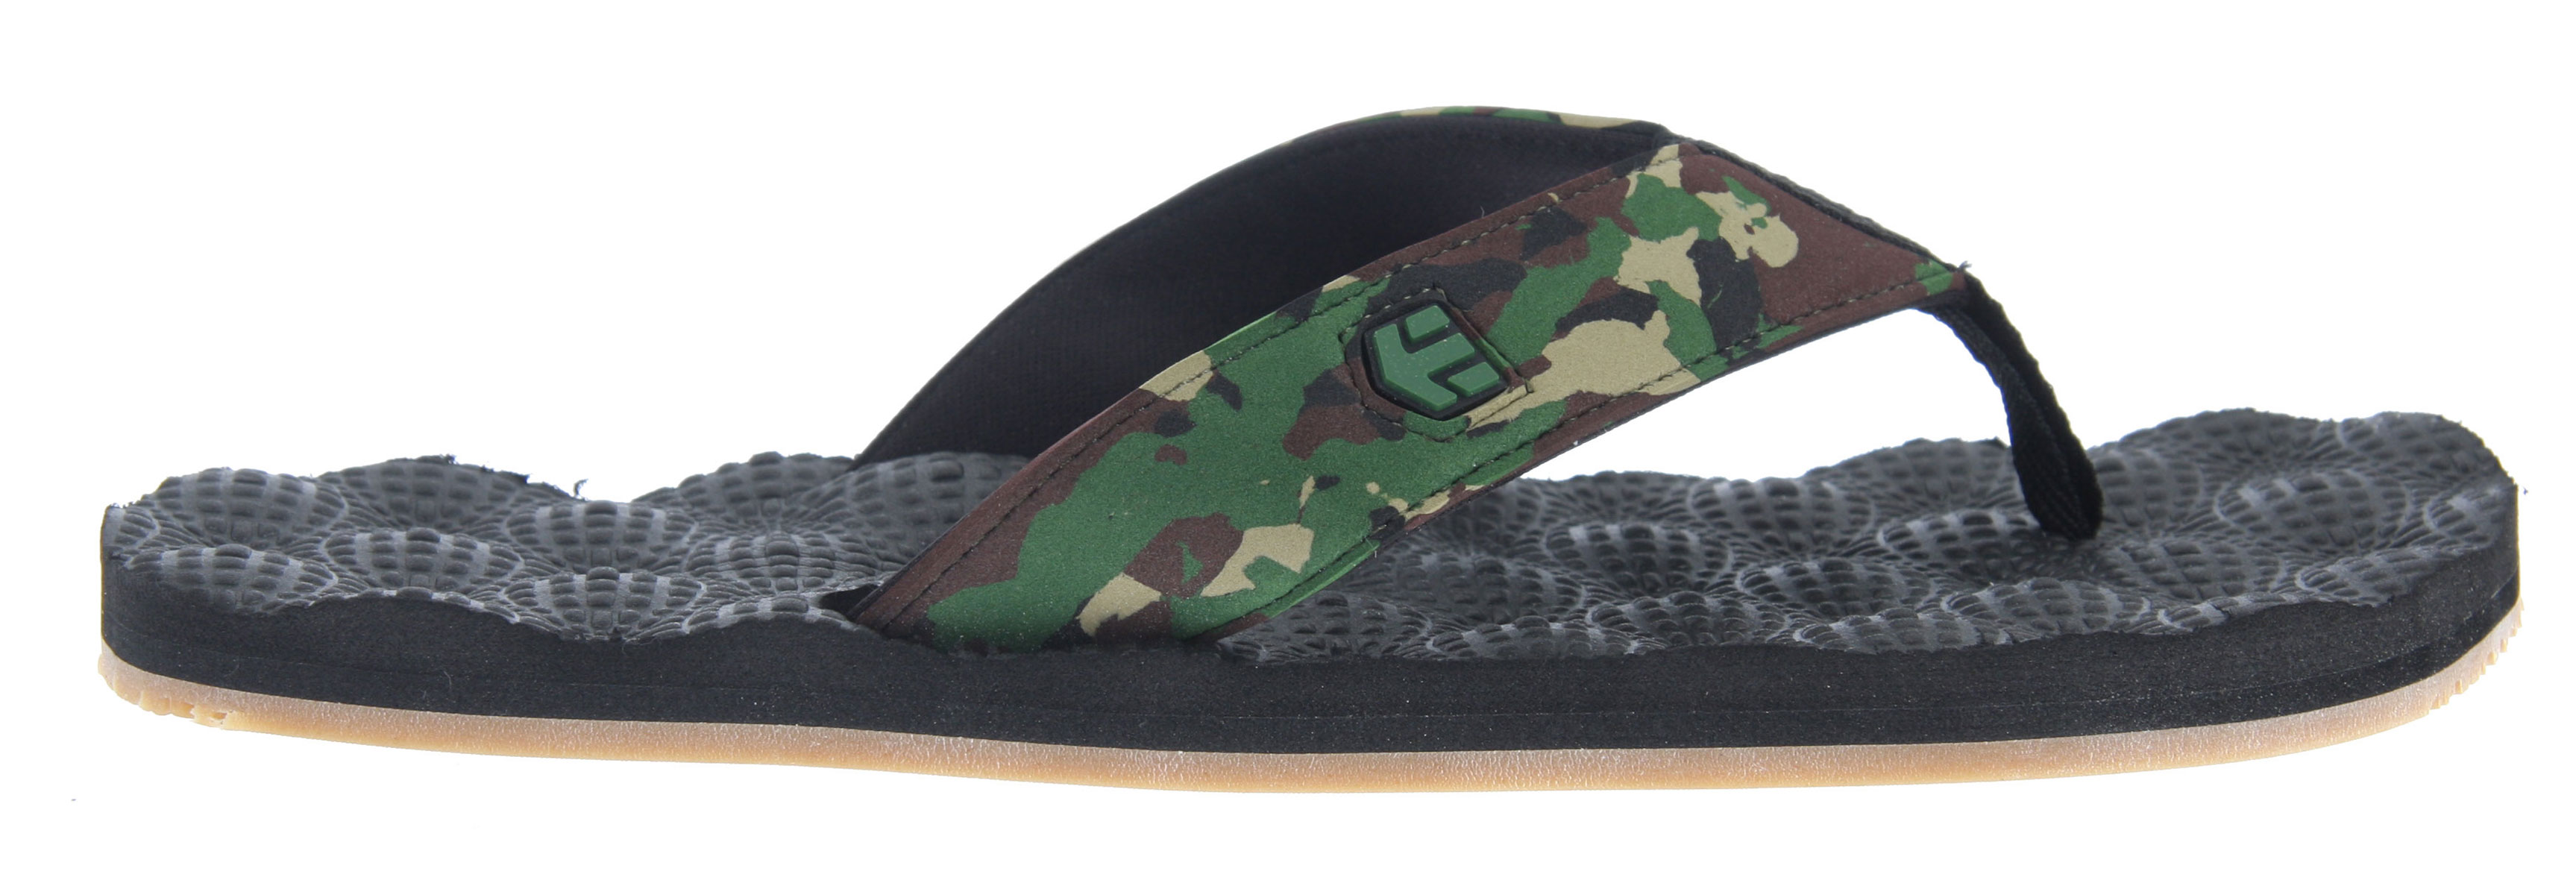 Skateboard Key Features of the Etnies Foam Ball Sandals: Designed by Jamie O'Brien Super soft molded EVA footbed Eco-friendly neoprene lining Rubber outsole - $24.95